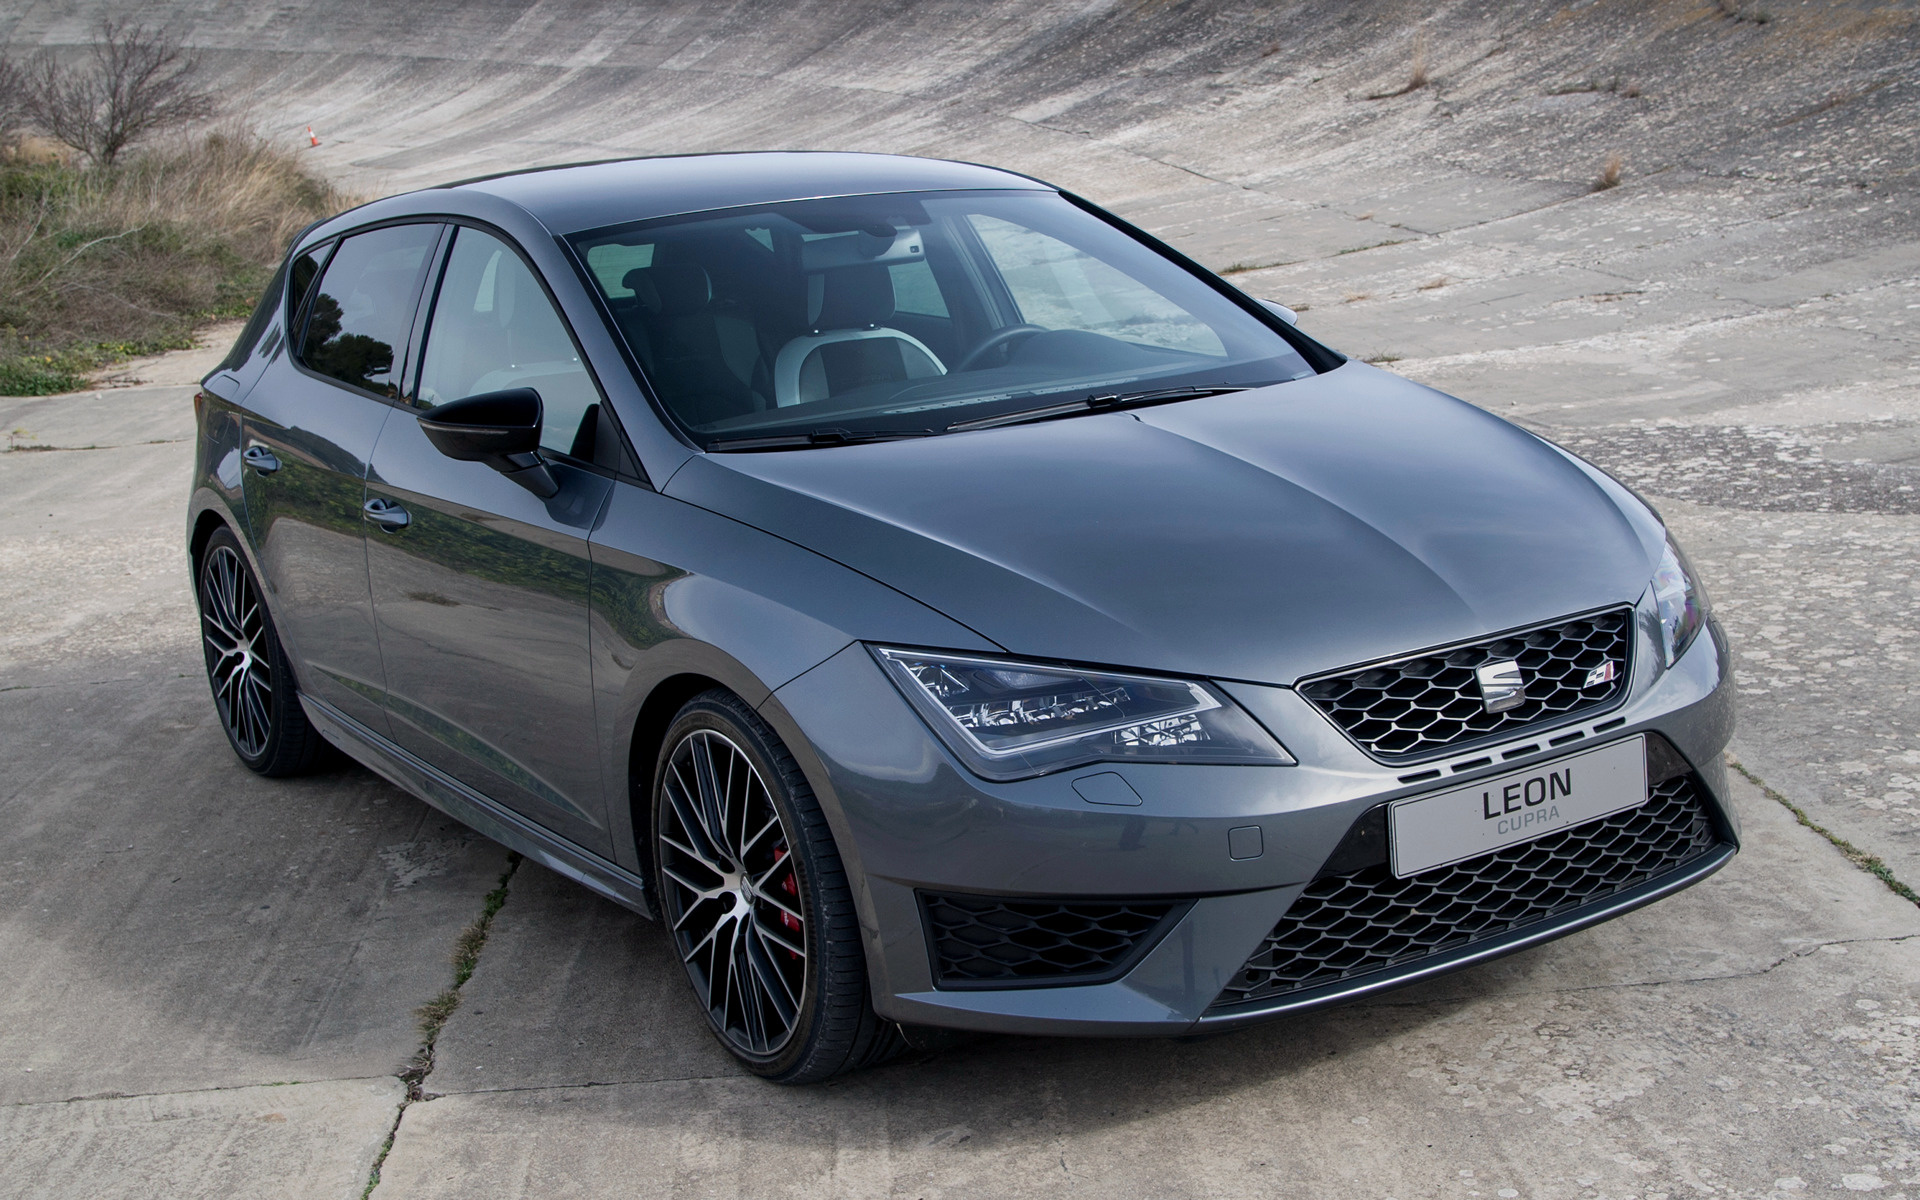 Hd Nissan Wallpaper Seat Leon Cupra 290 2015 Wallpapers And Hd Images Car